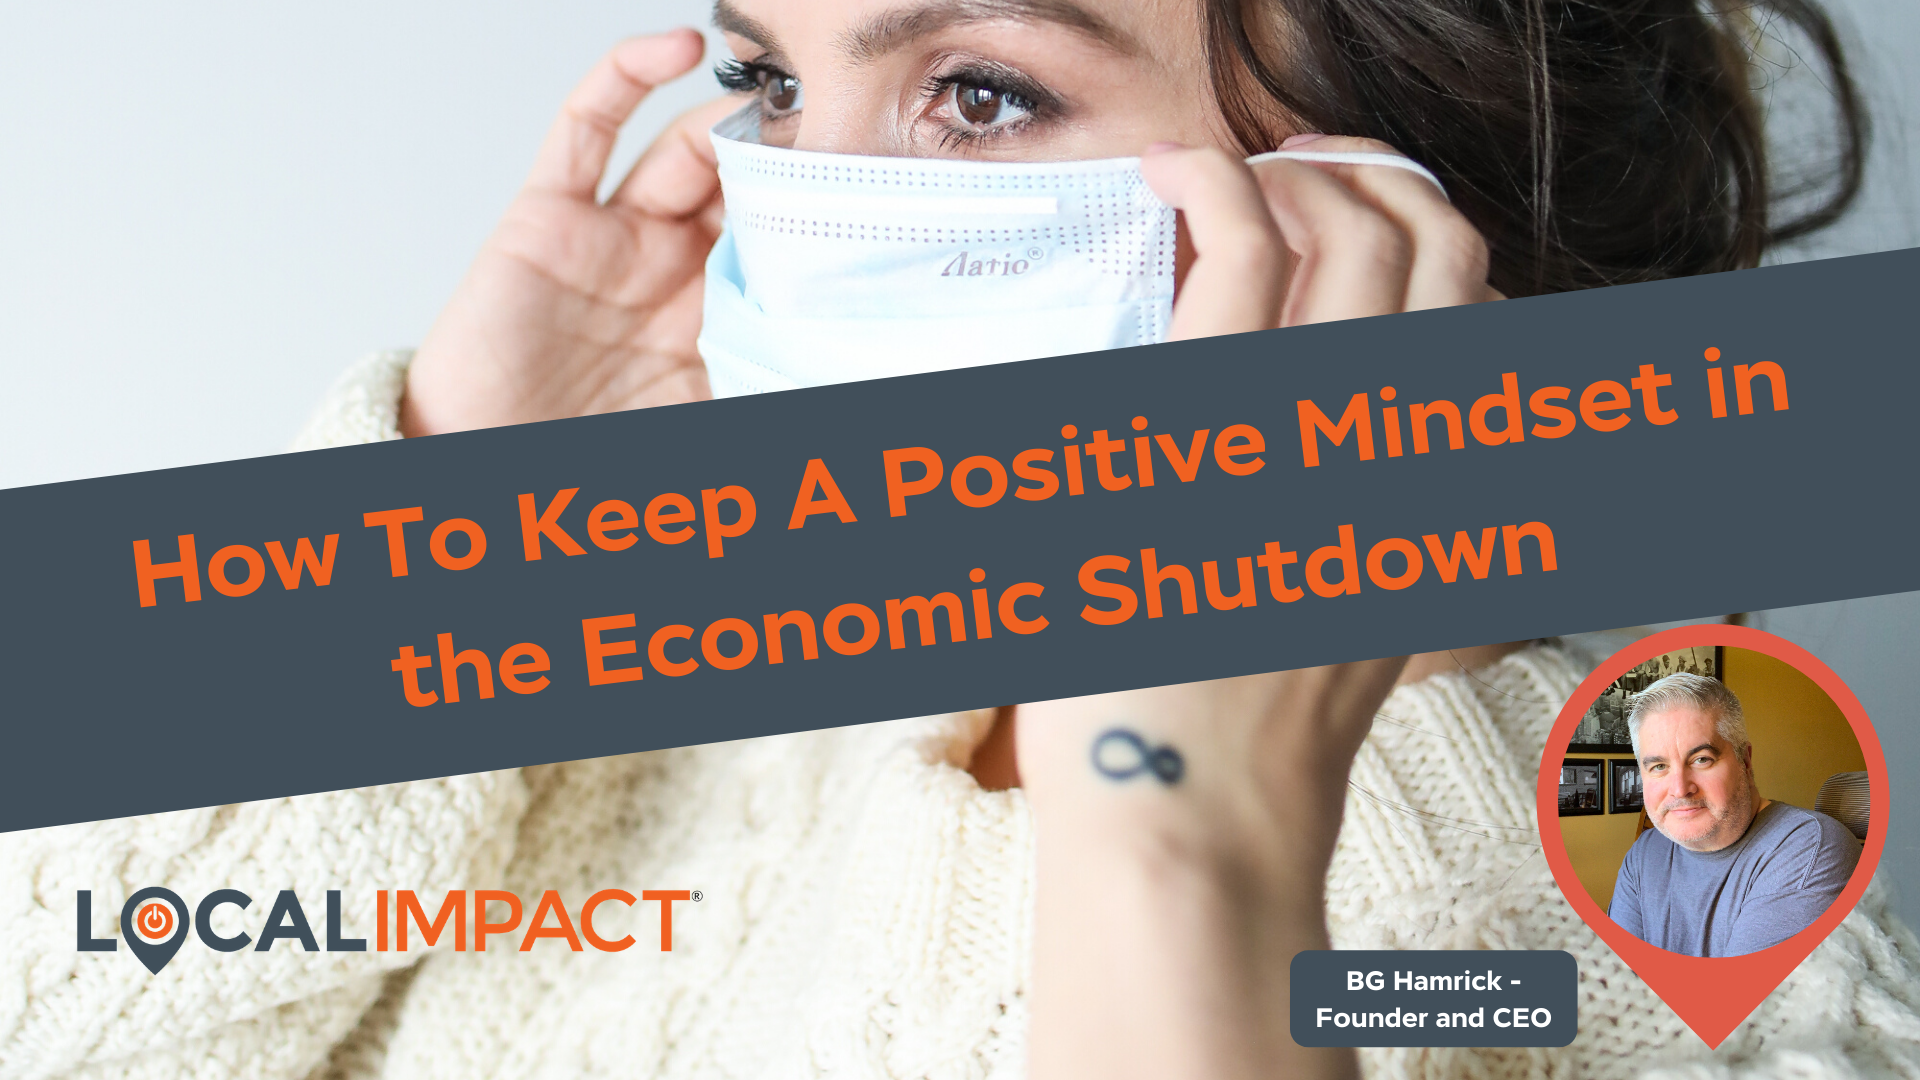 How To Keep A Positive Mindset in the Economic Shutdown